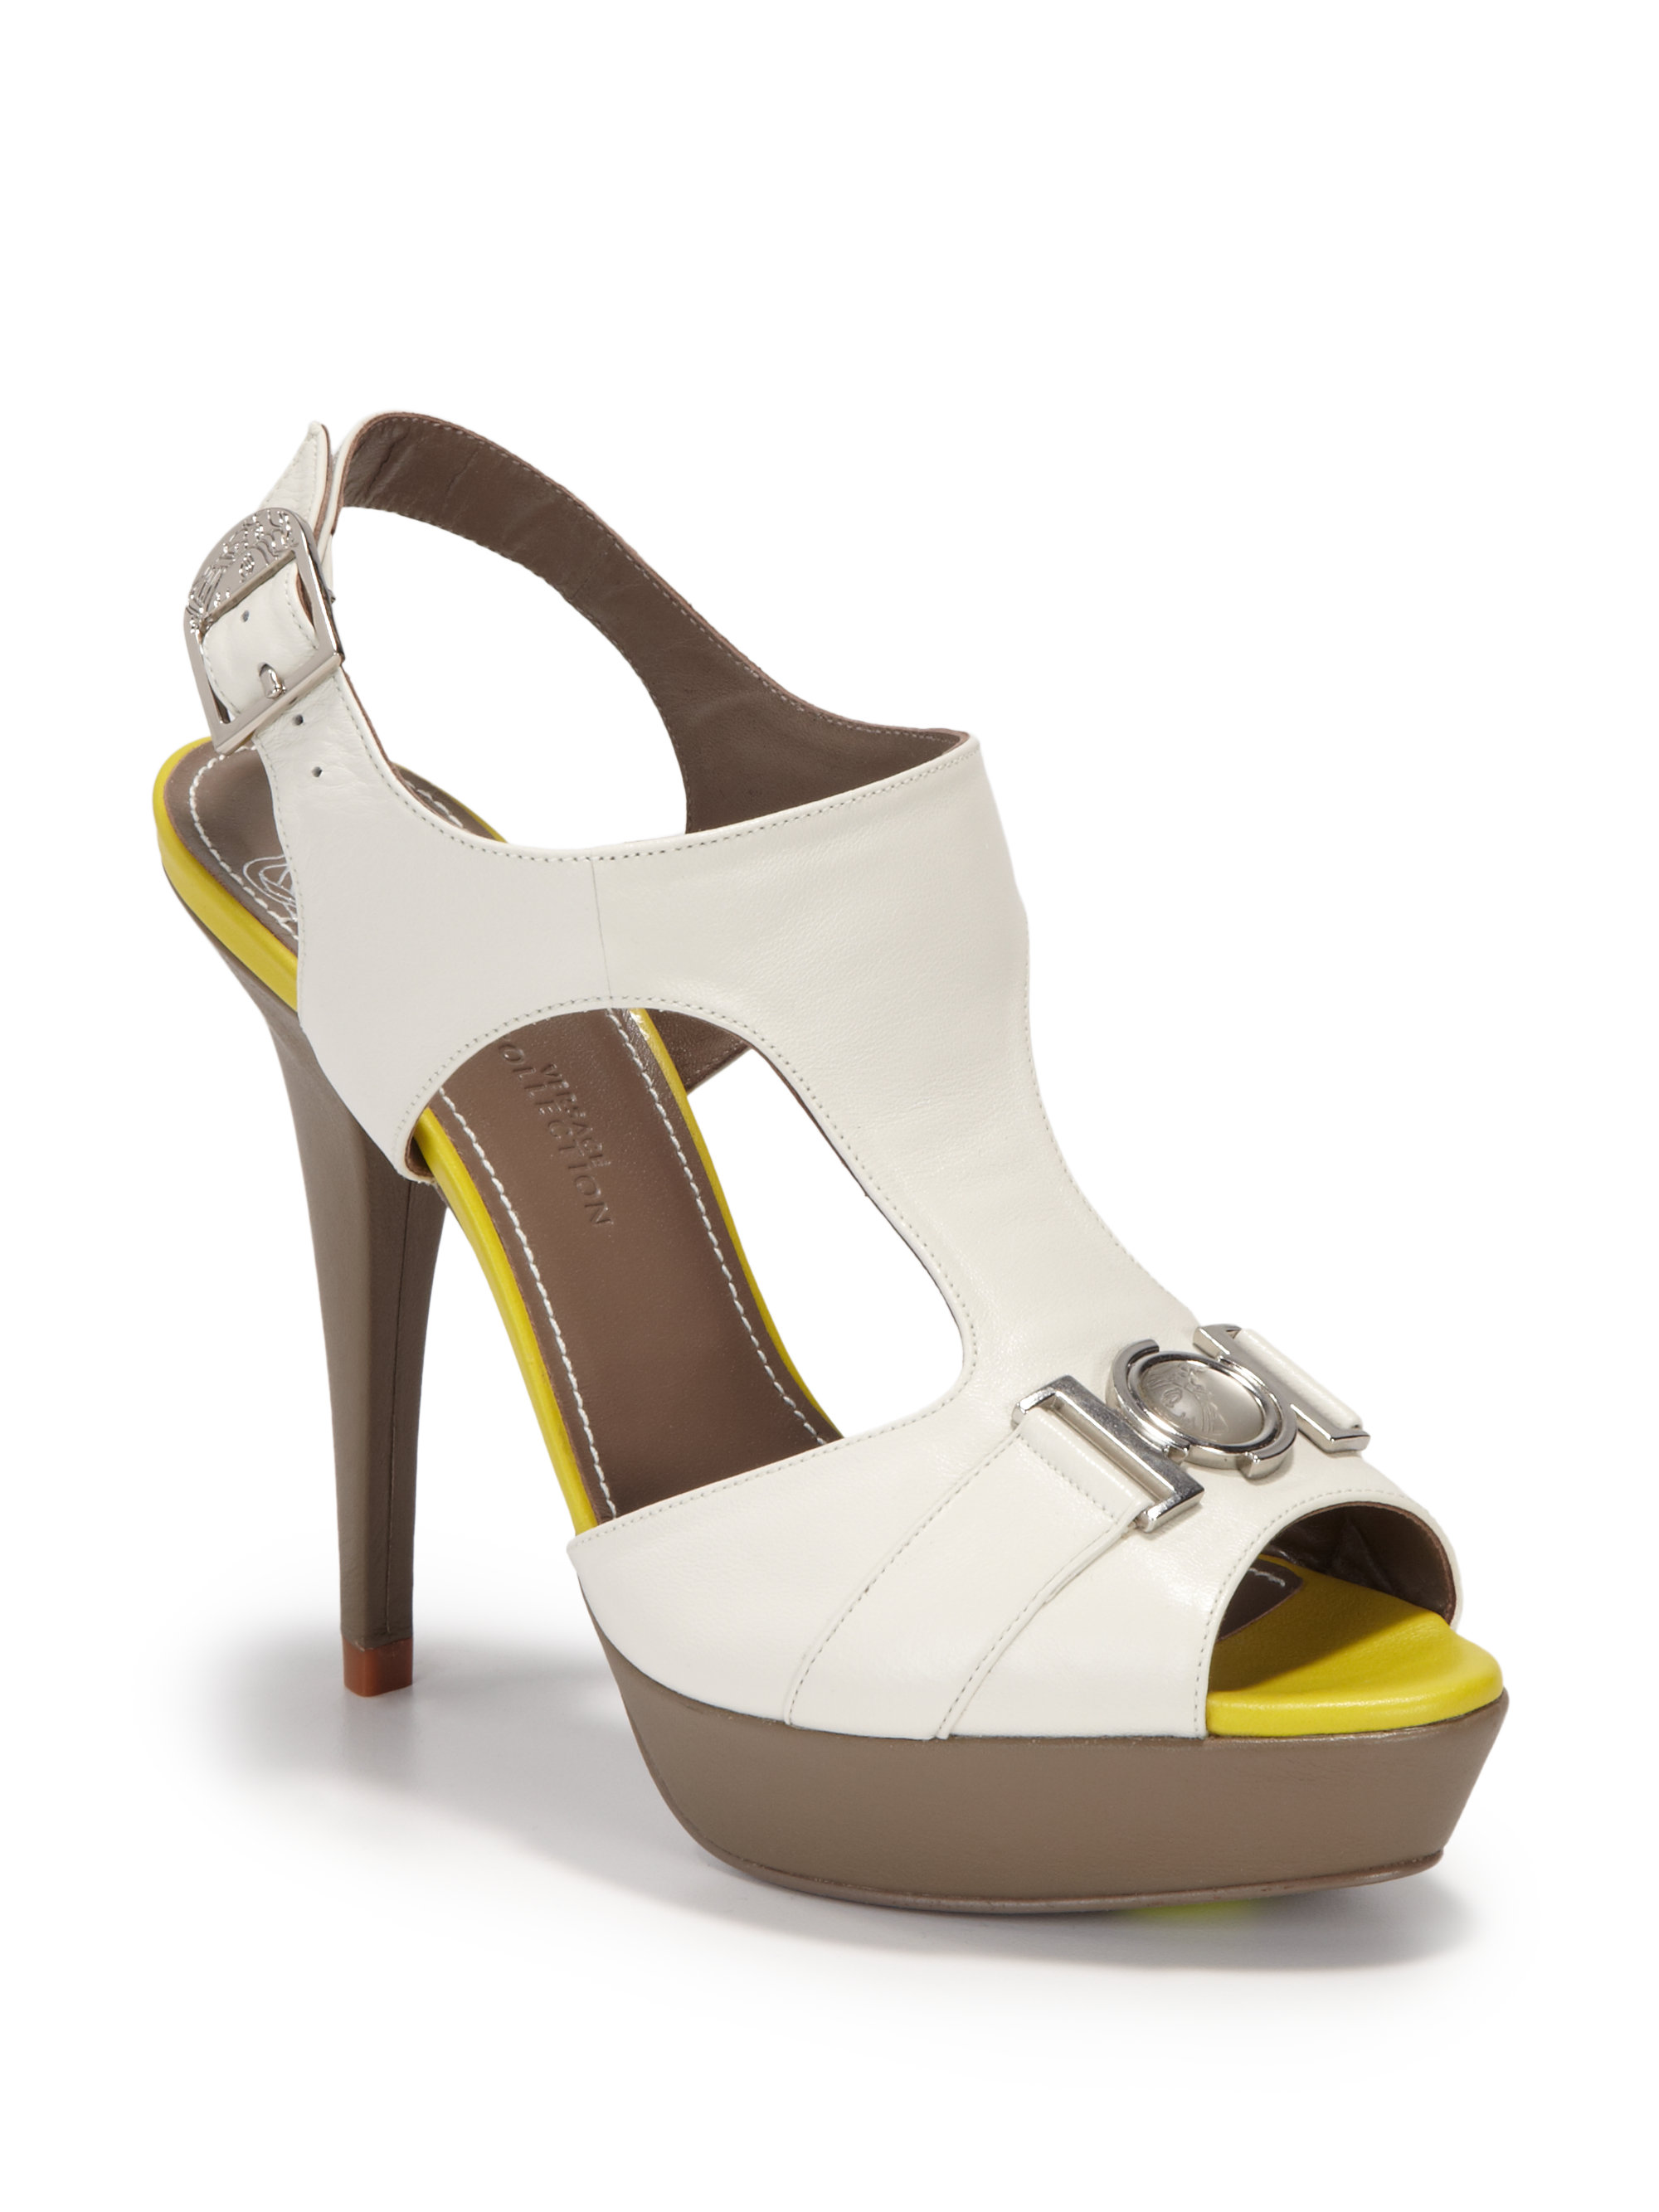 Versace Colorblock Cutout Leather Platform Sandals in White (yellow) | Lyst